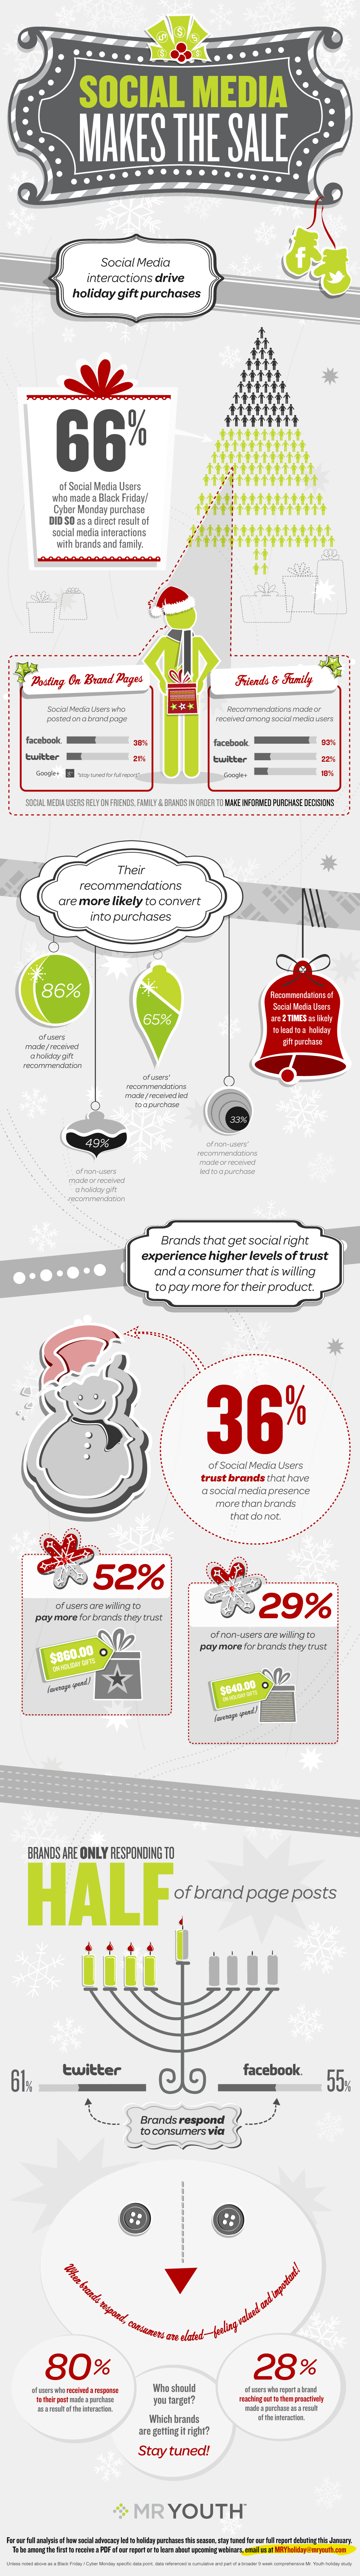 how social media is influencing holiday This infographic details how how peer influence and social media affect people's holiday buying decisions.